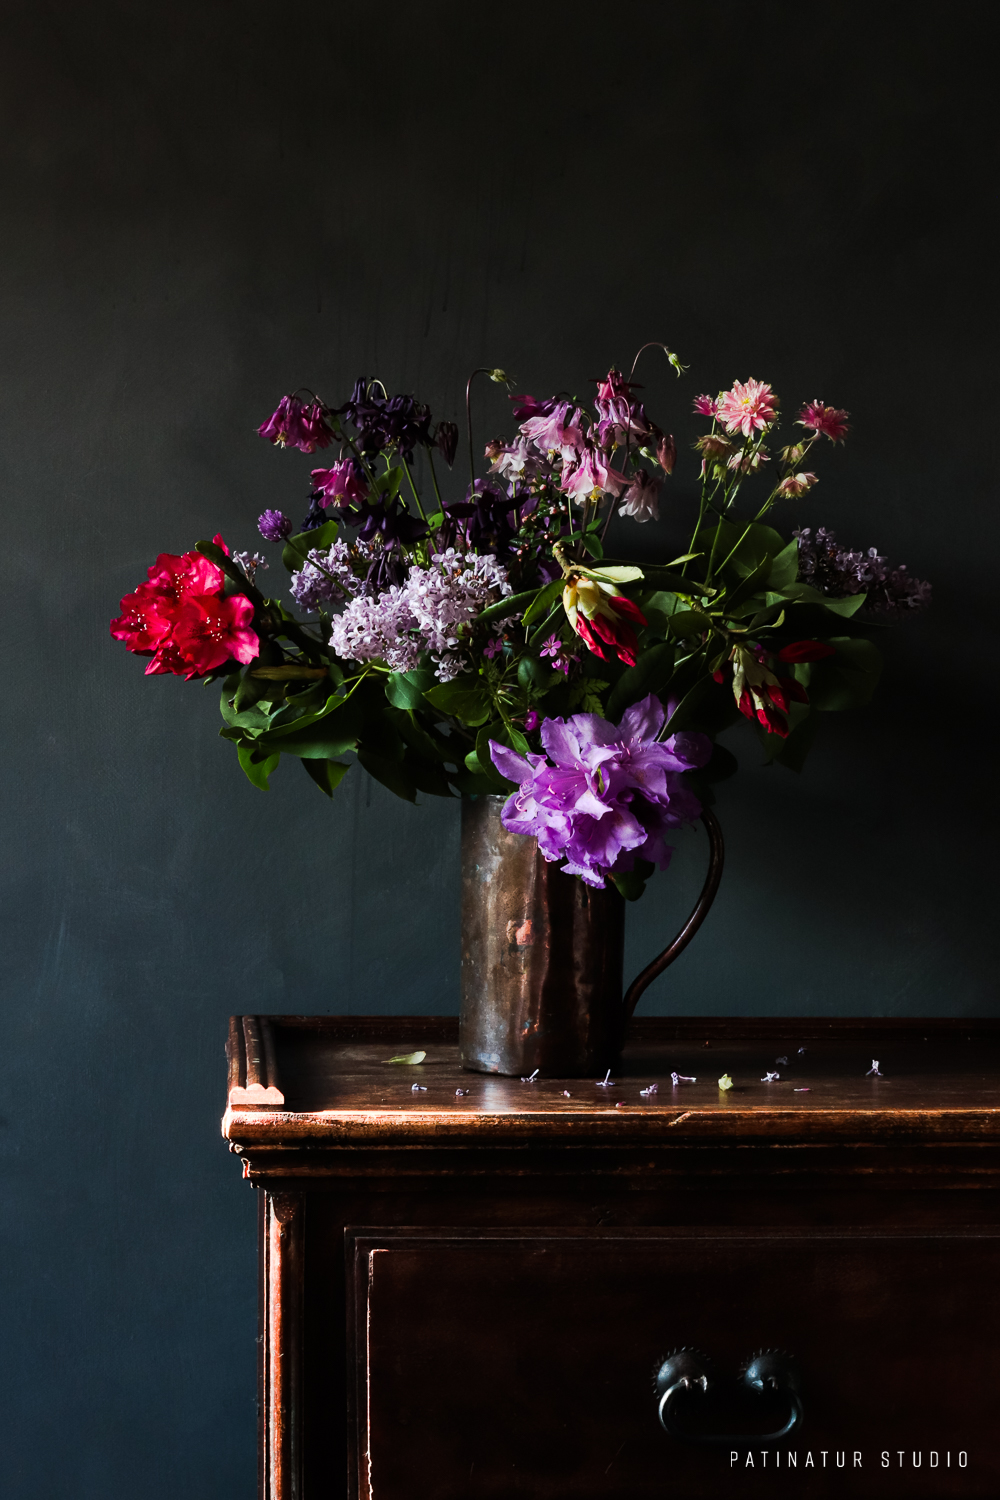 Photo art | Dark and moody still life with flower bouquet with Rhododendron, Lilac and Aquilegia in copper jug